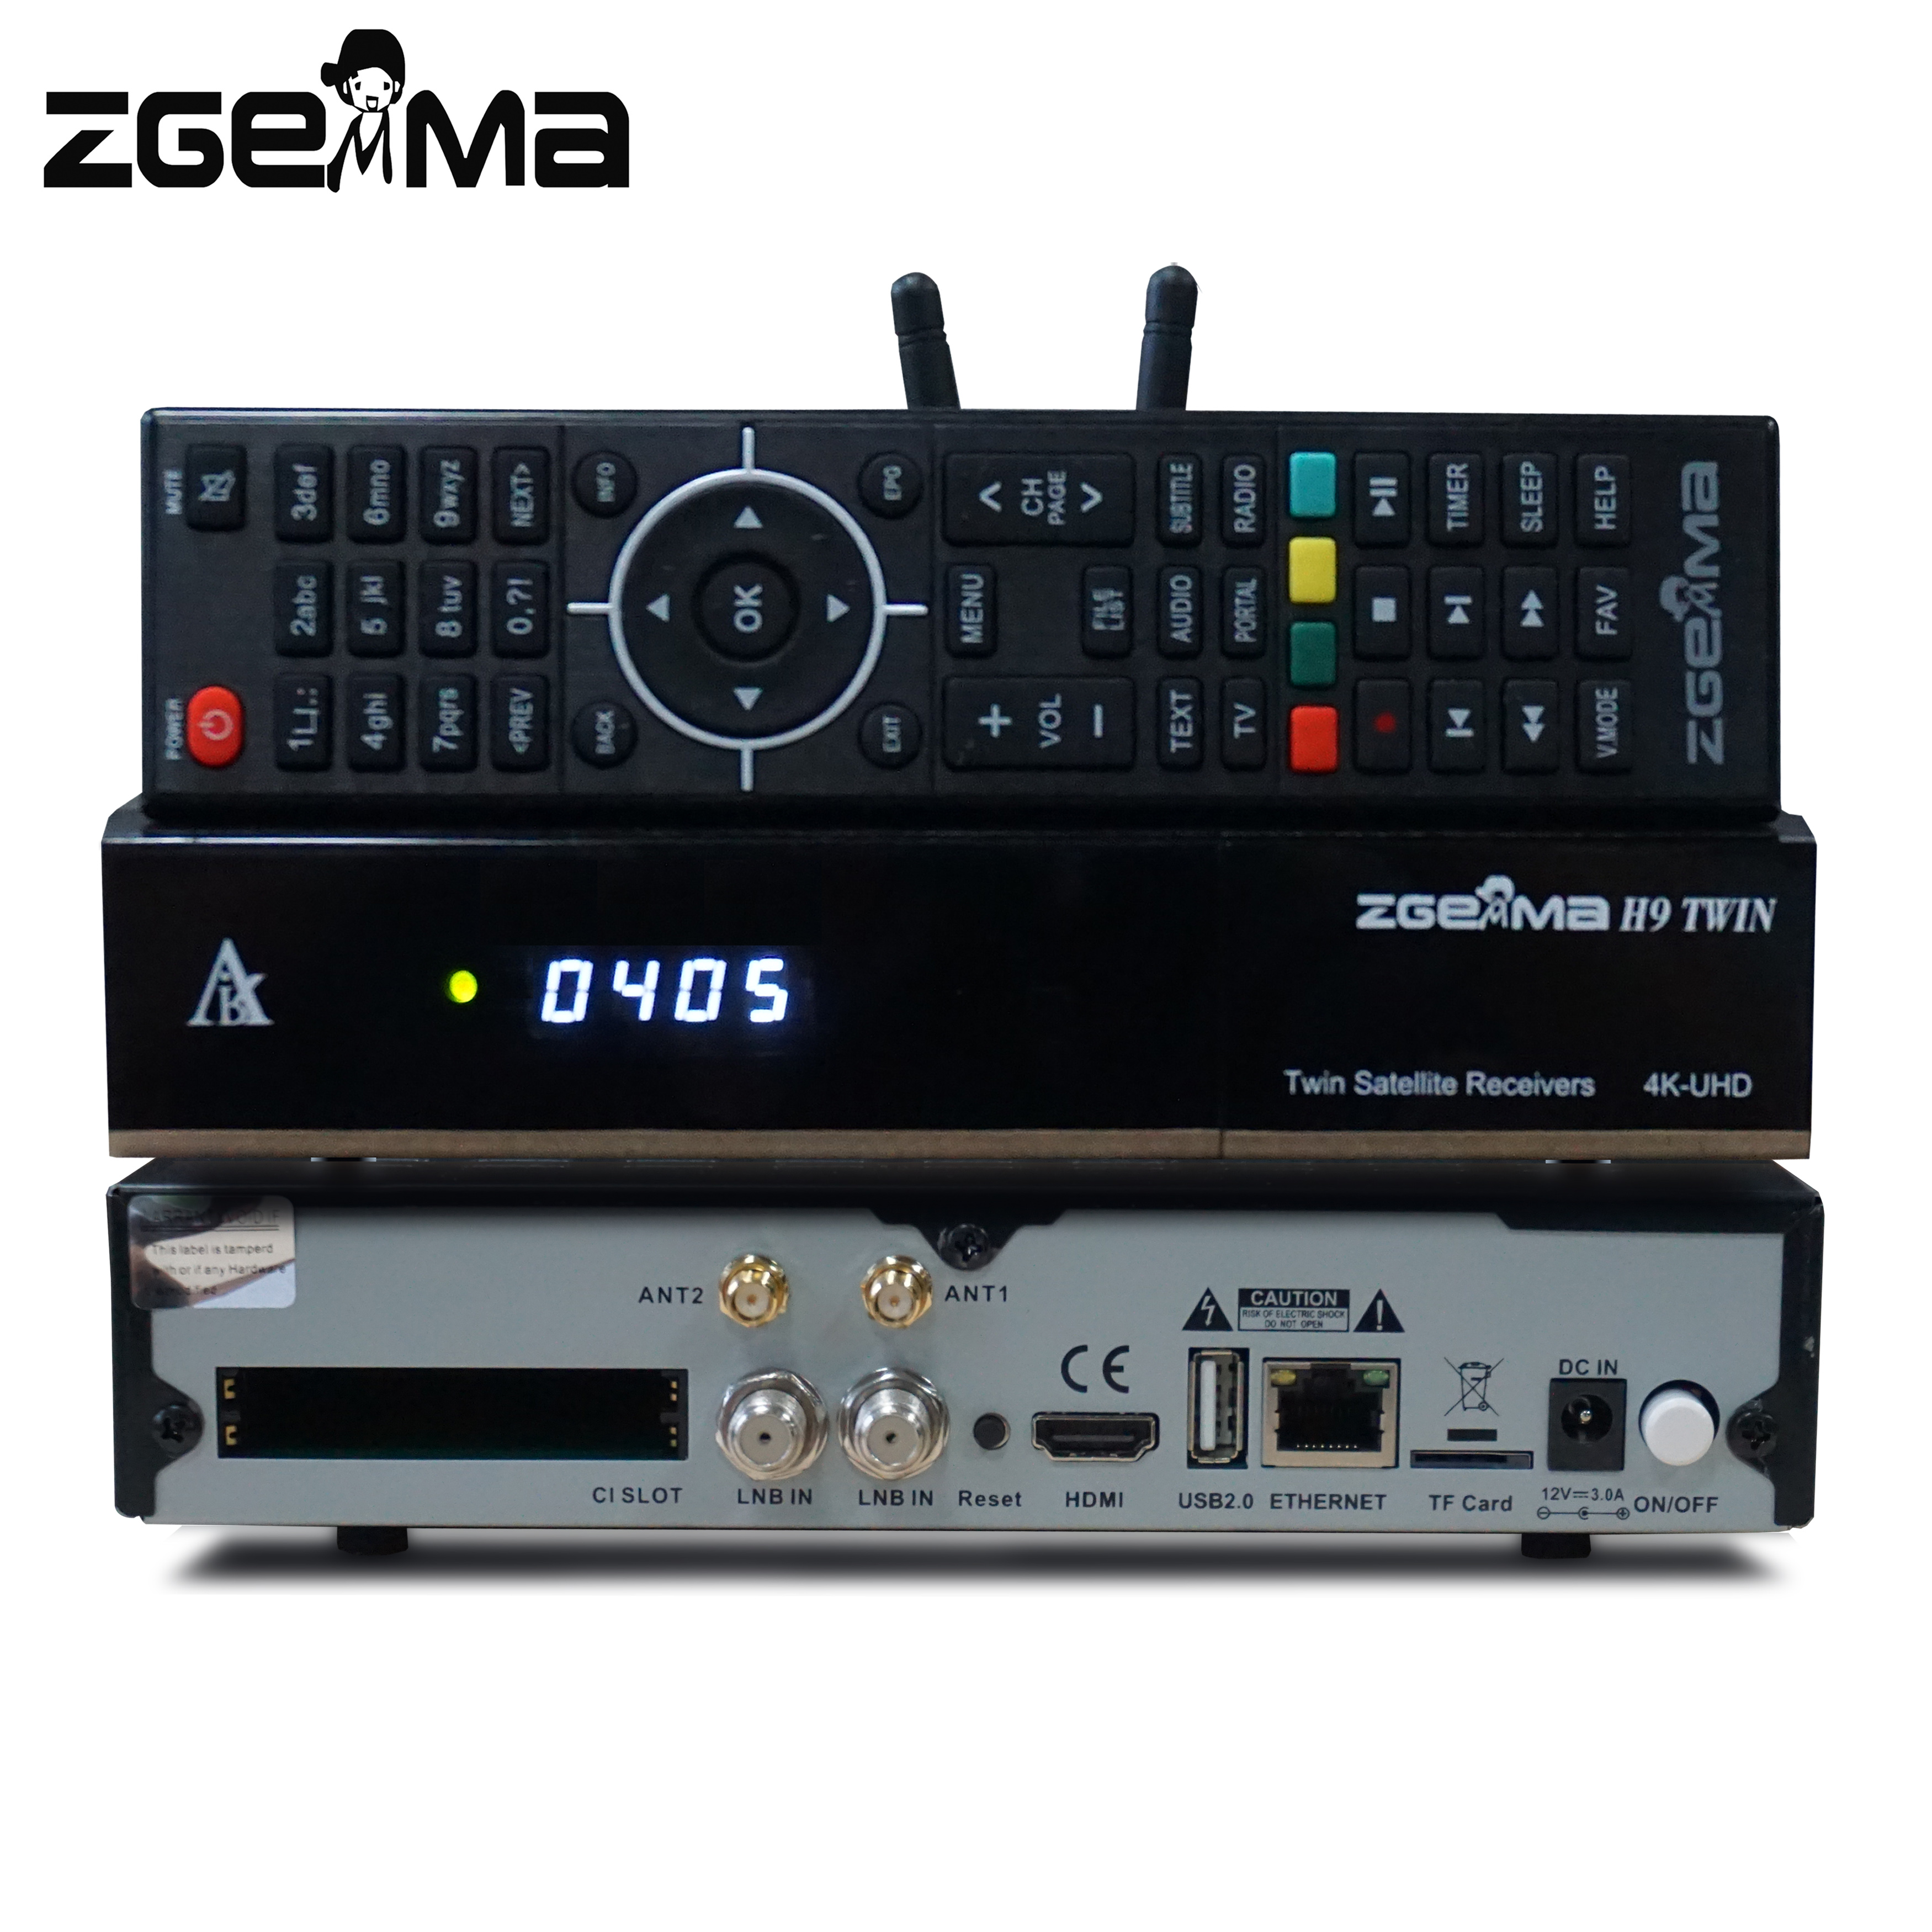 2pcs/lot 4K UHD Zgemma H9 TWIN 2*CI+Linux E2 2*DVB-S2X IPTV twin Satellite TV Receiver T2-MI WIFI Built-in image